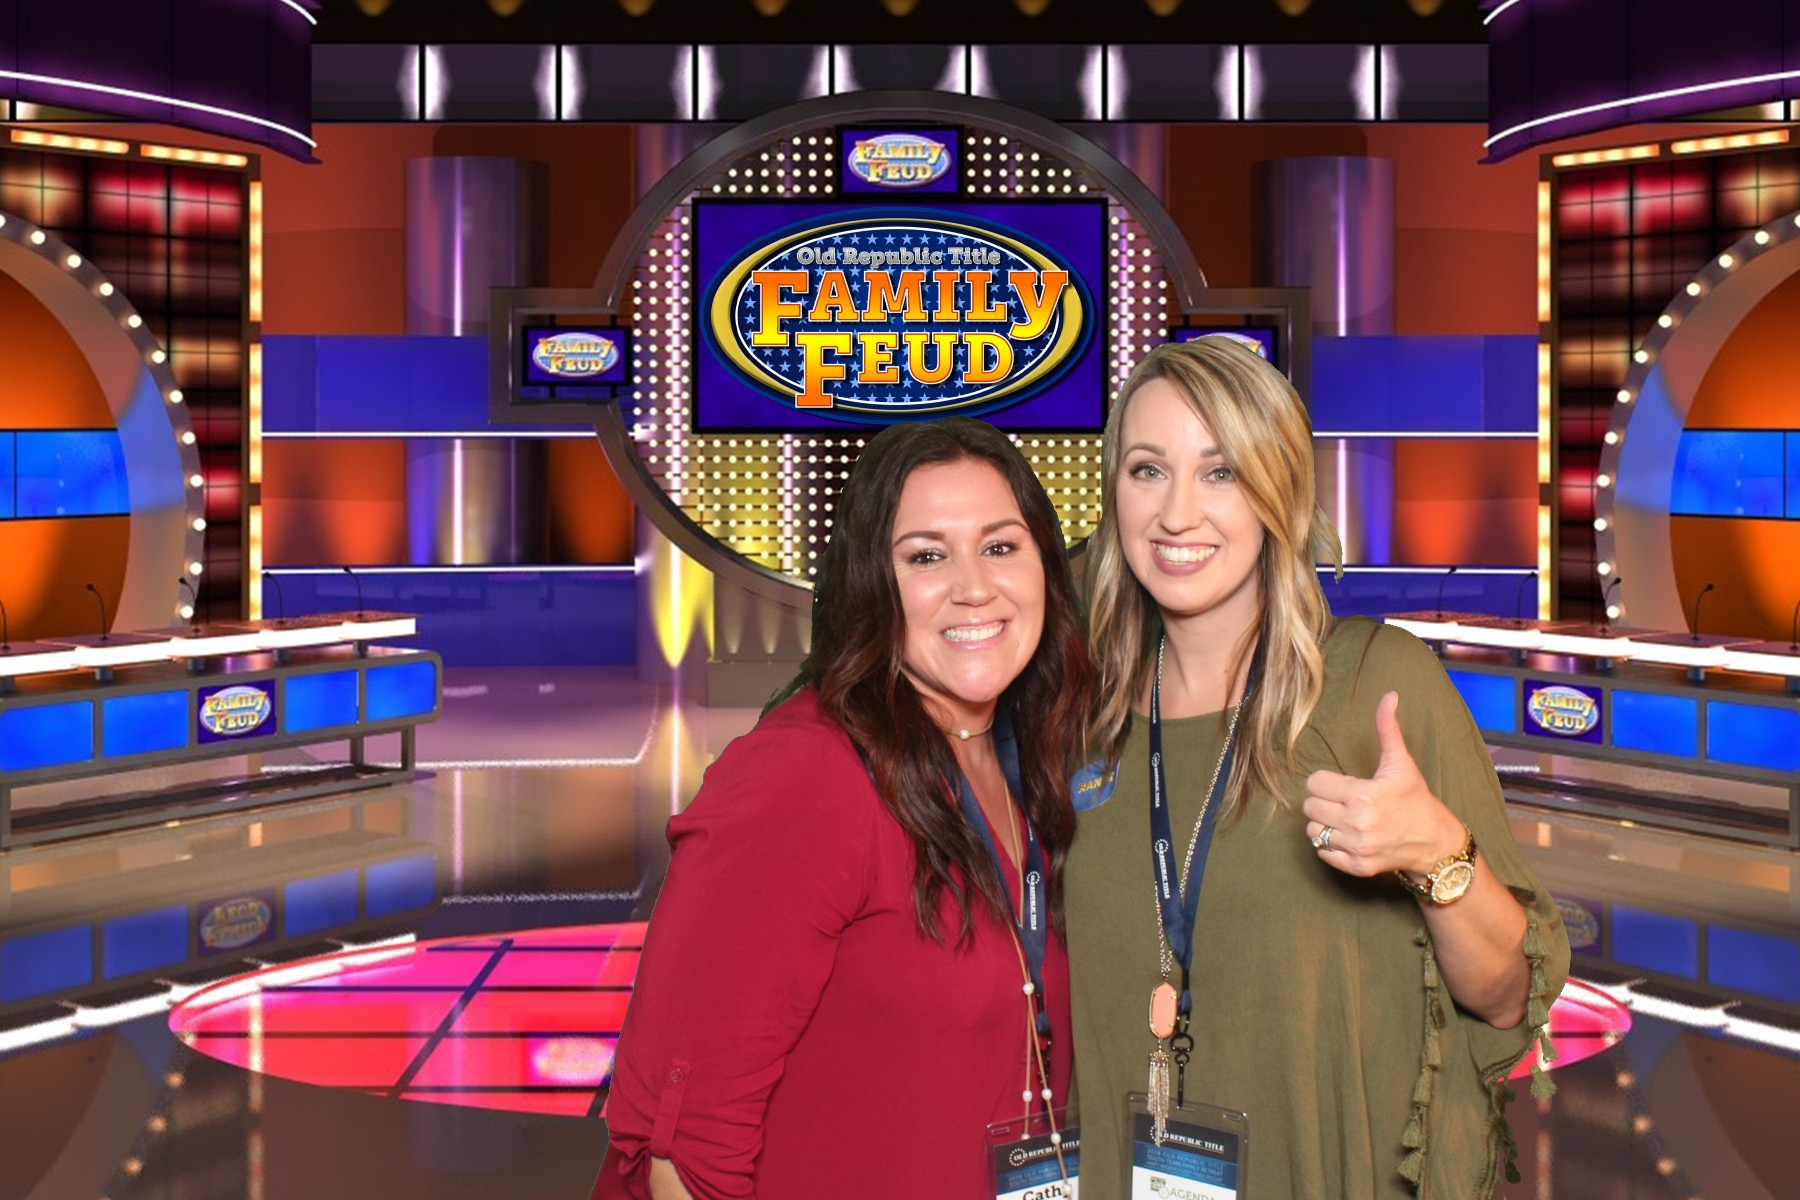 Green Screen image of two friends standing in front of a Family Feud game show scene